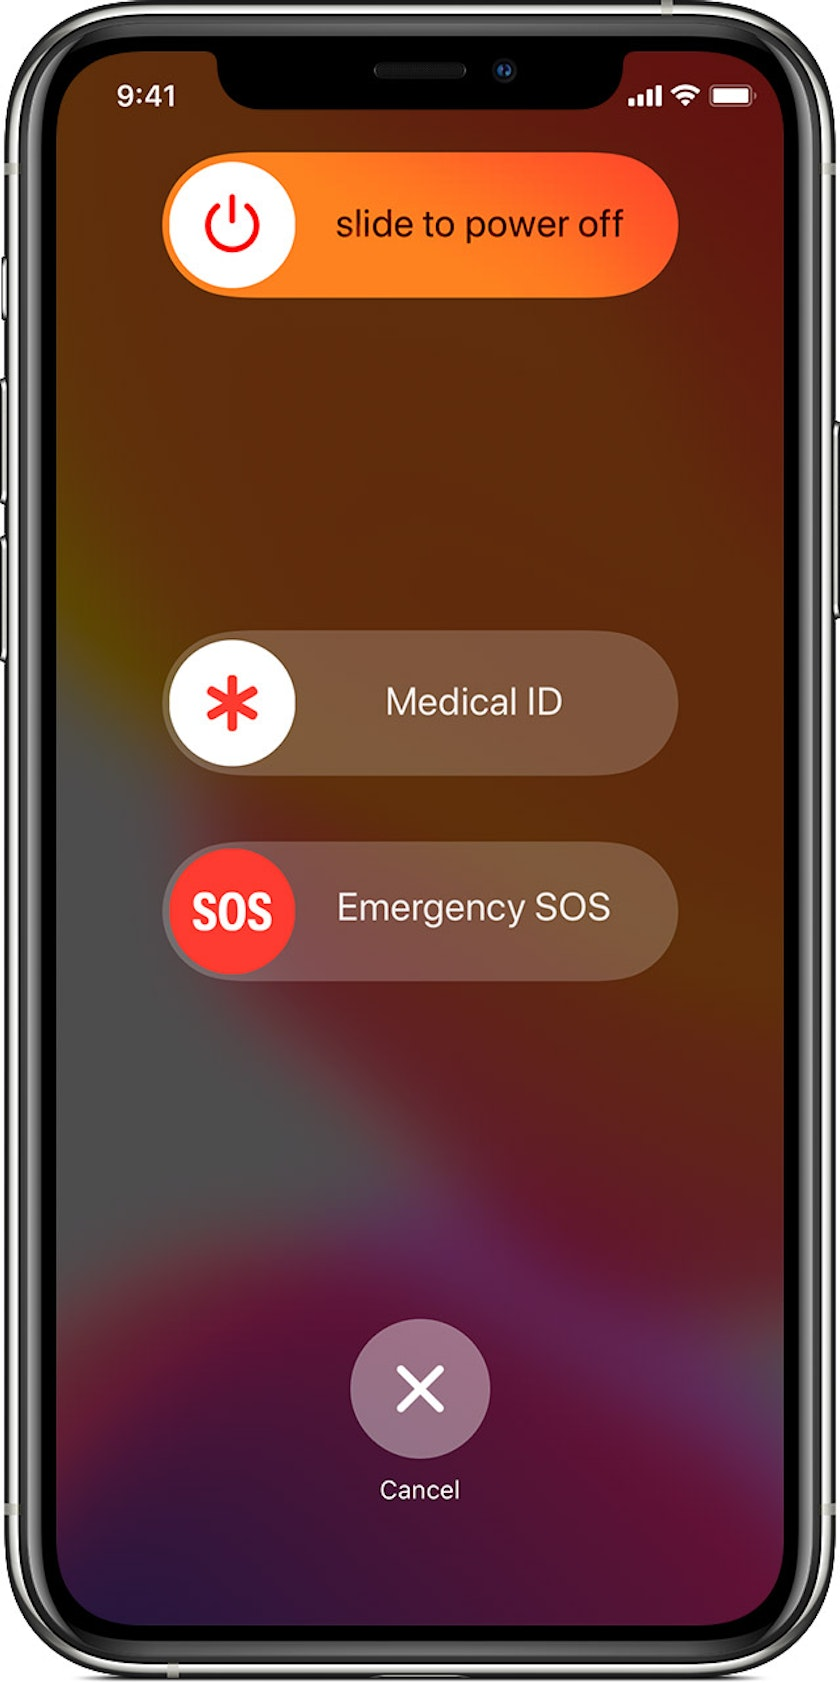 Emergency SOS feature on an iPhone